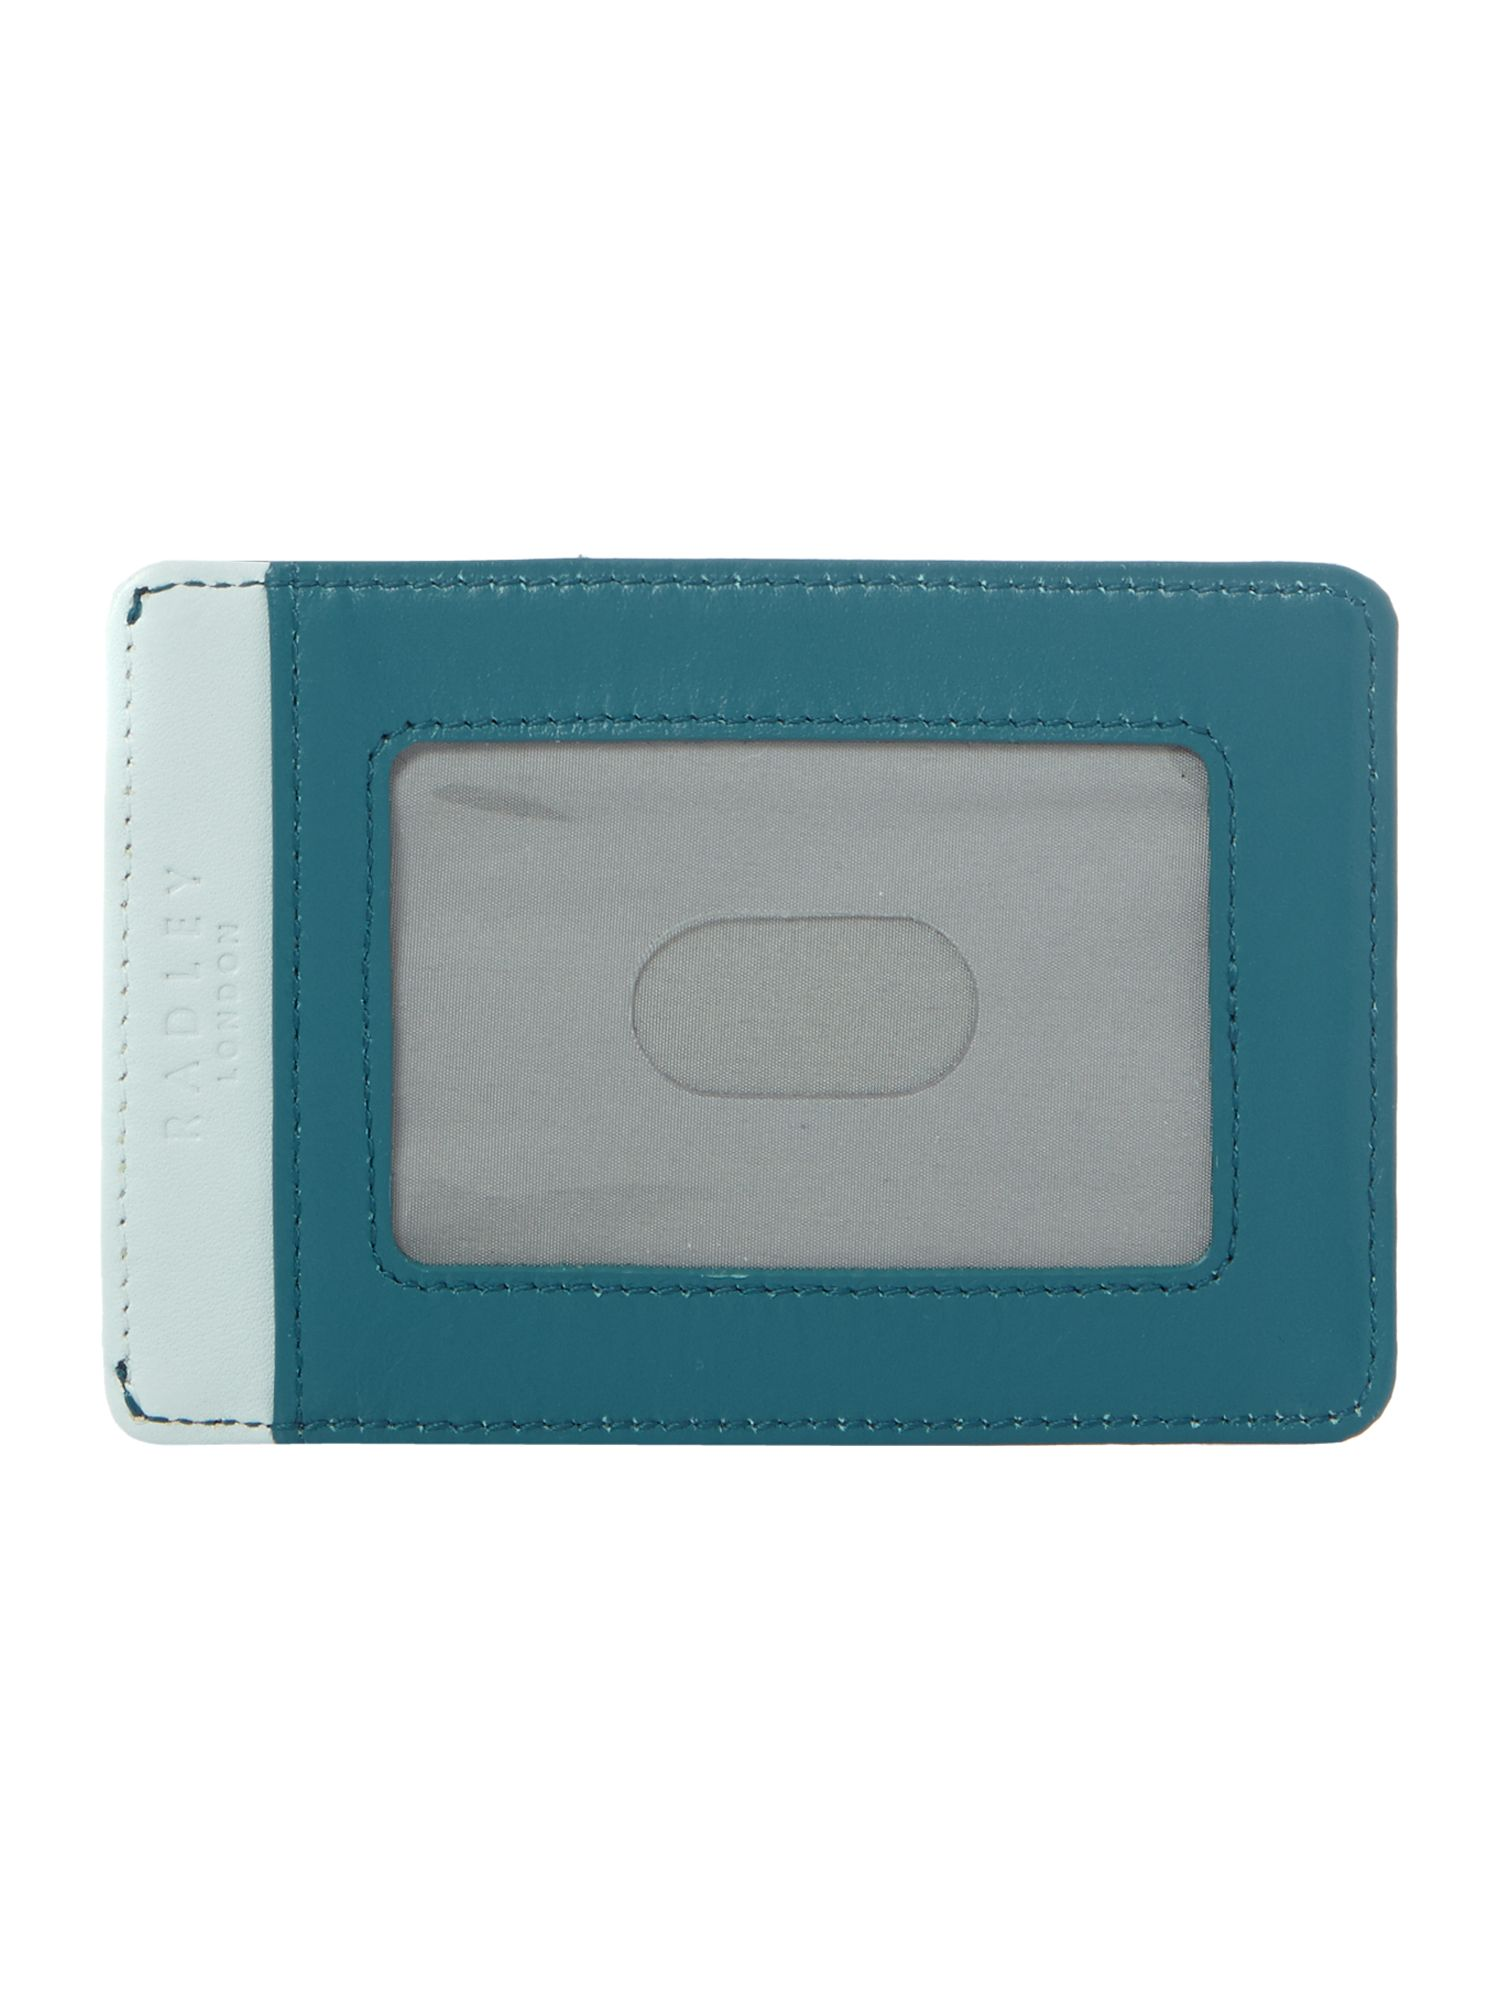 Redley express blue travel card holder